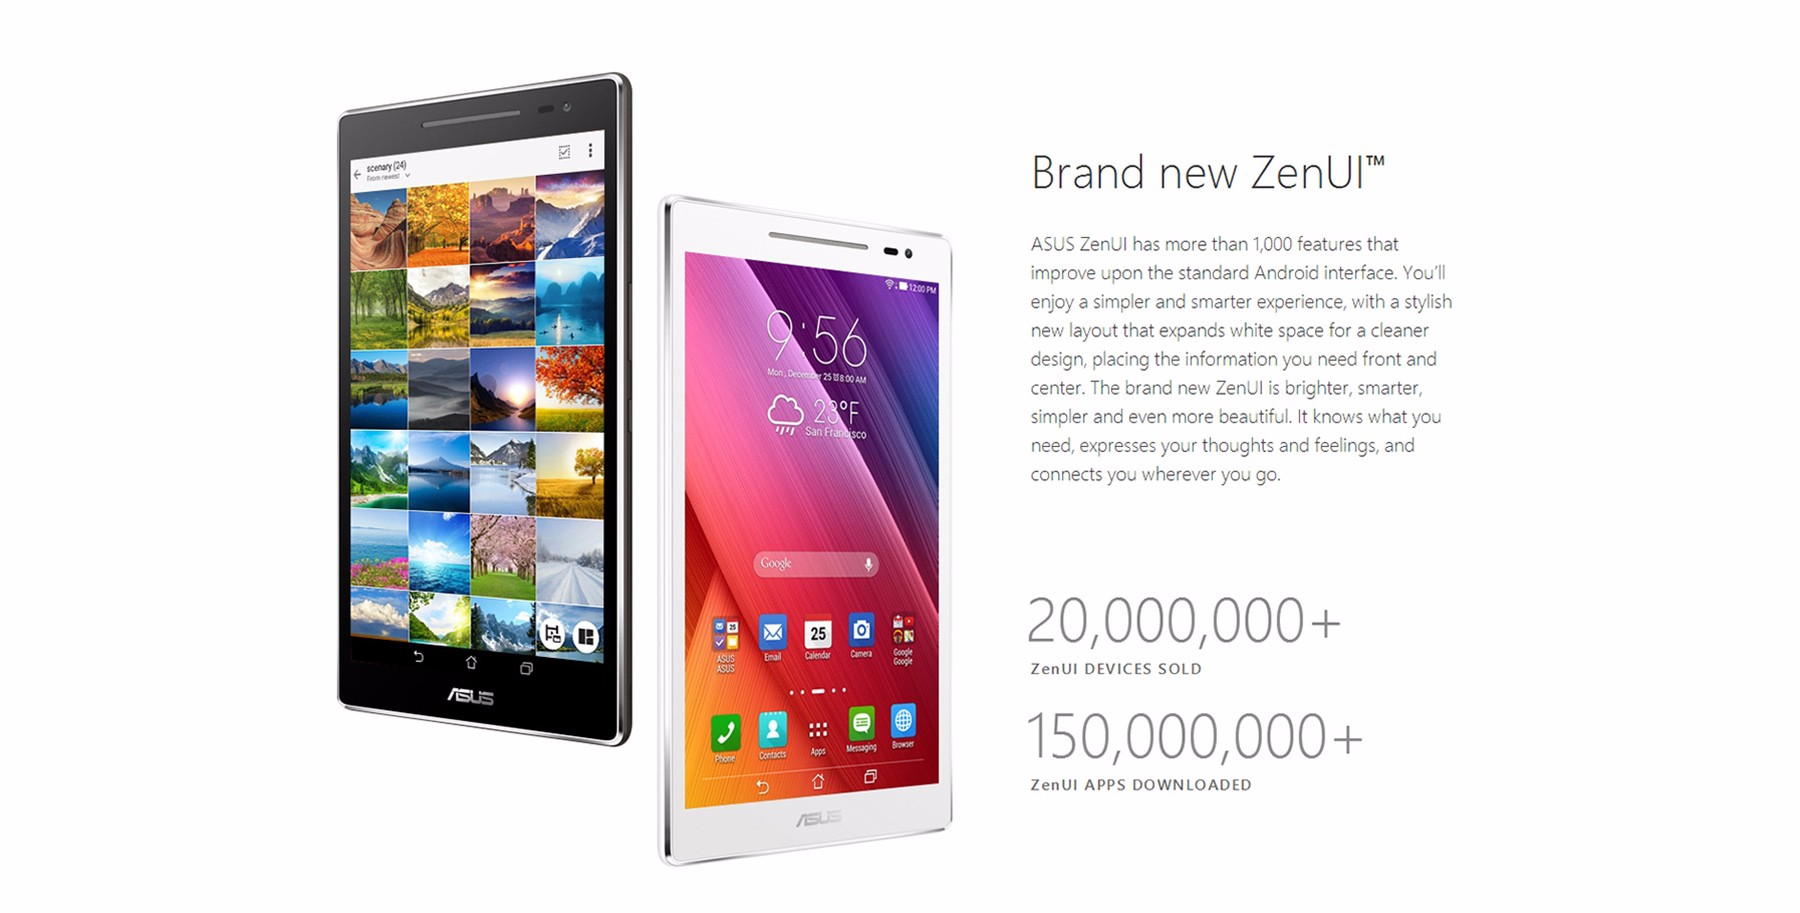 ASUS Z380 KNL Elite Version 4G Phone Tablet PC 8.0 inch Android 6.0 IPS OGS Screen Qualcomm MSM8929 Octa Core 1.0GHz 3GB RAM 32GB ROM Ambient Light Sensor